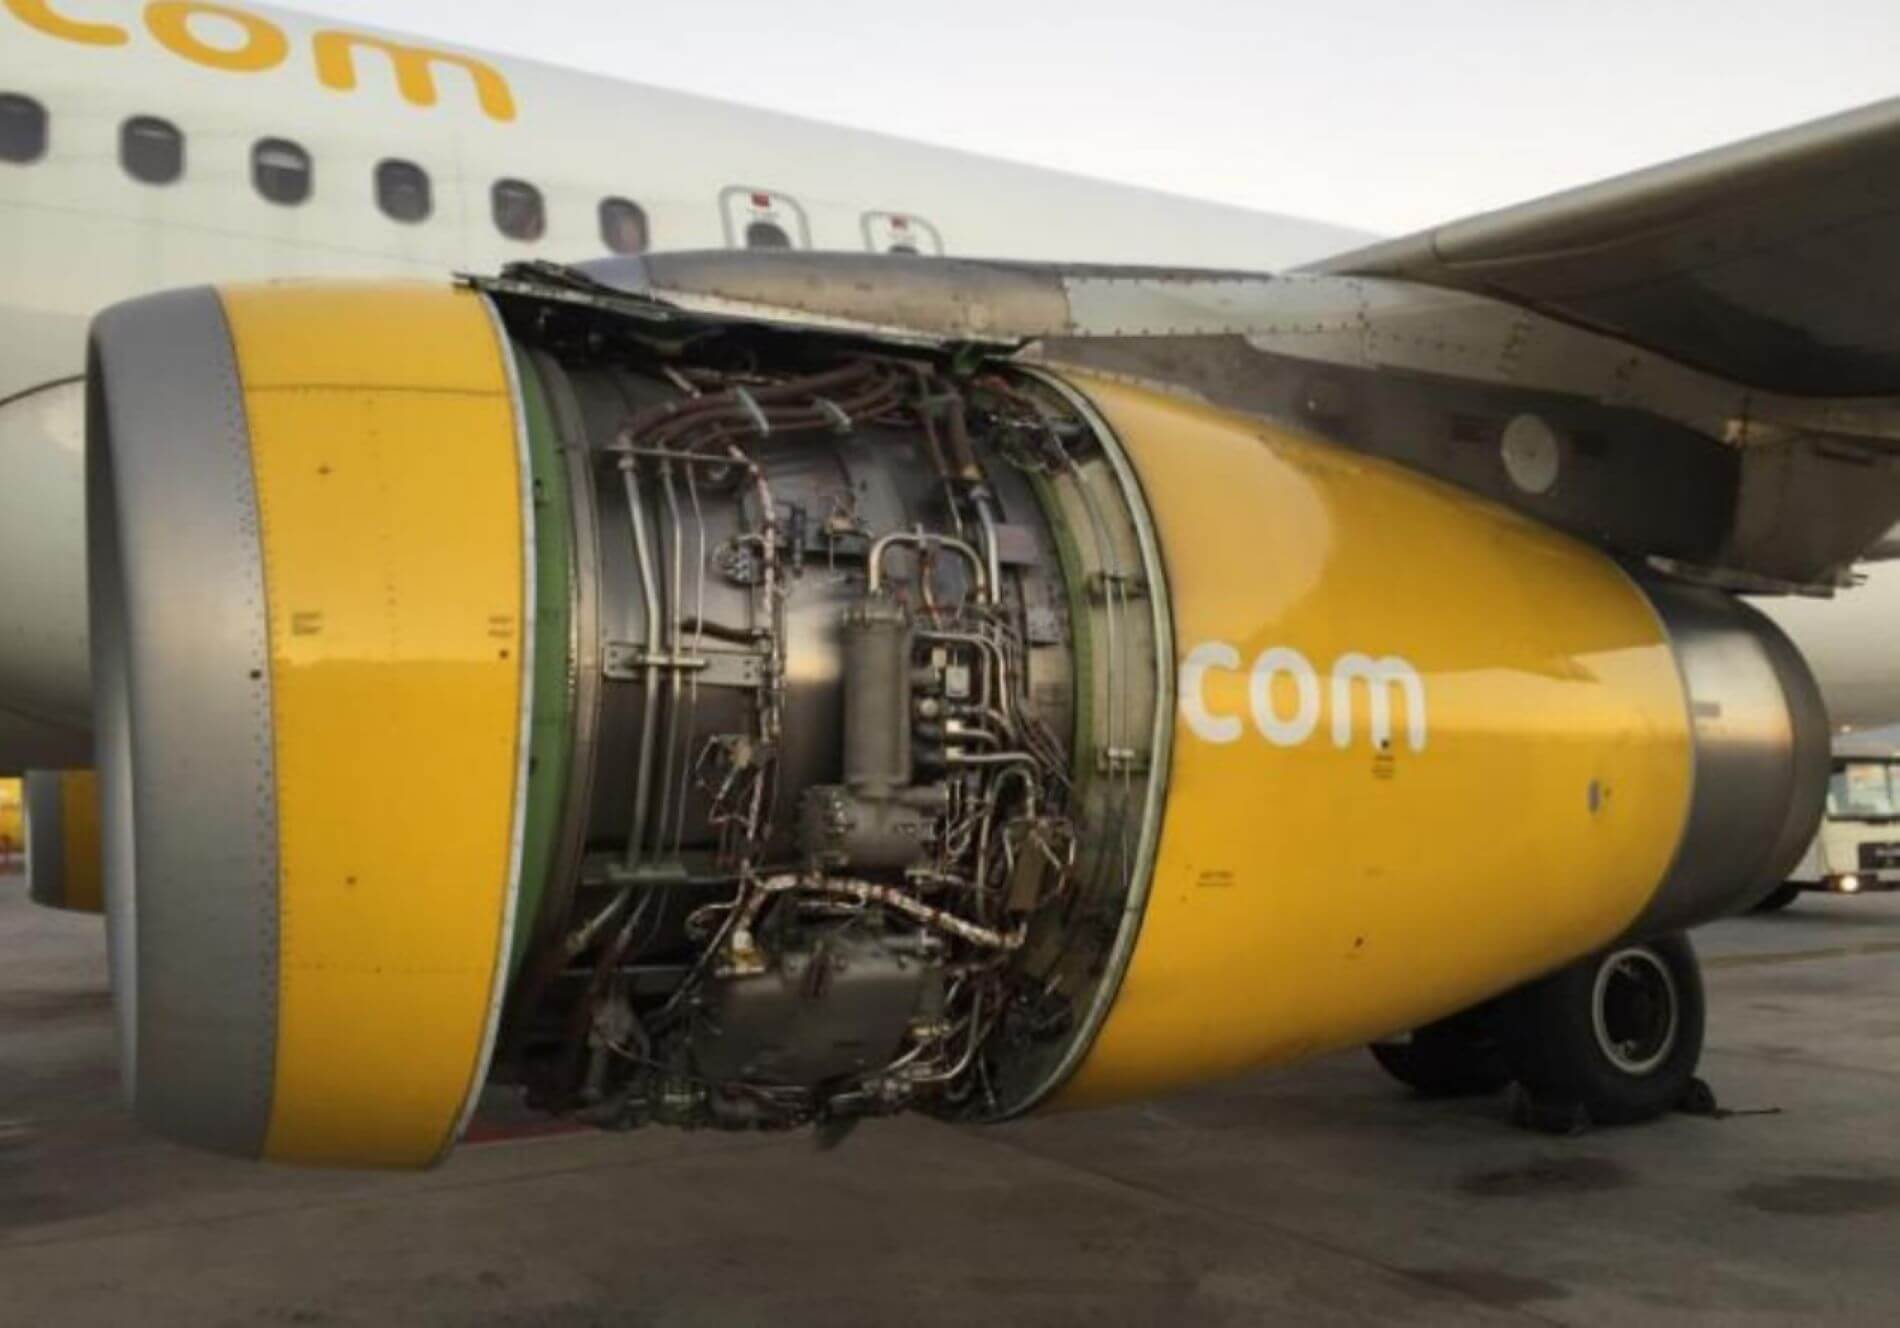 Airbus A320 without engine cowling AeroTime News